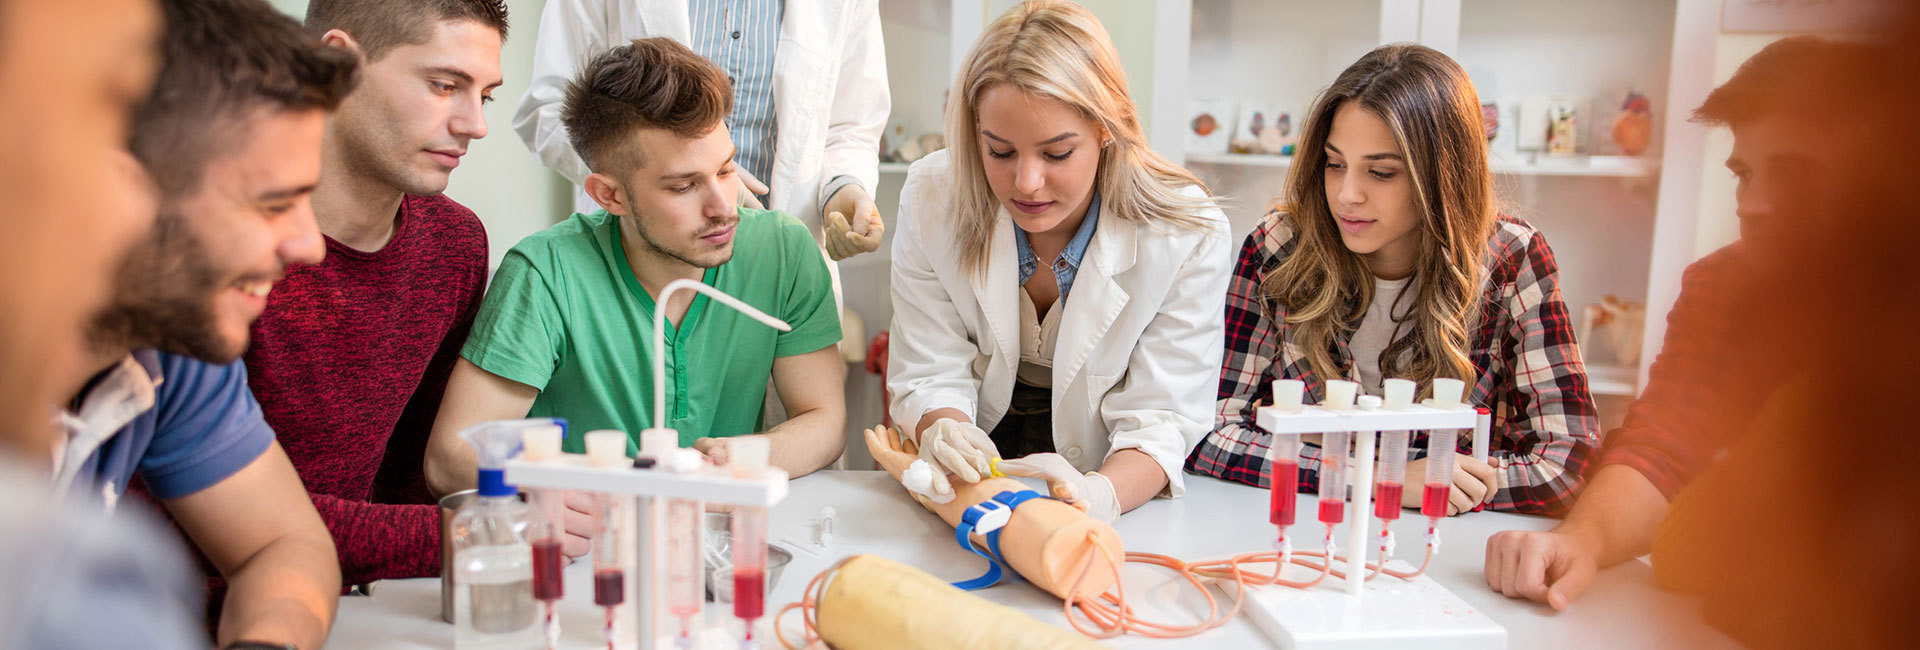 Healthcare Training Courses UK, Venepuncture and Cannulation Training UK, Phlebotomy Training UK